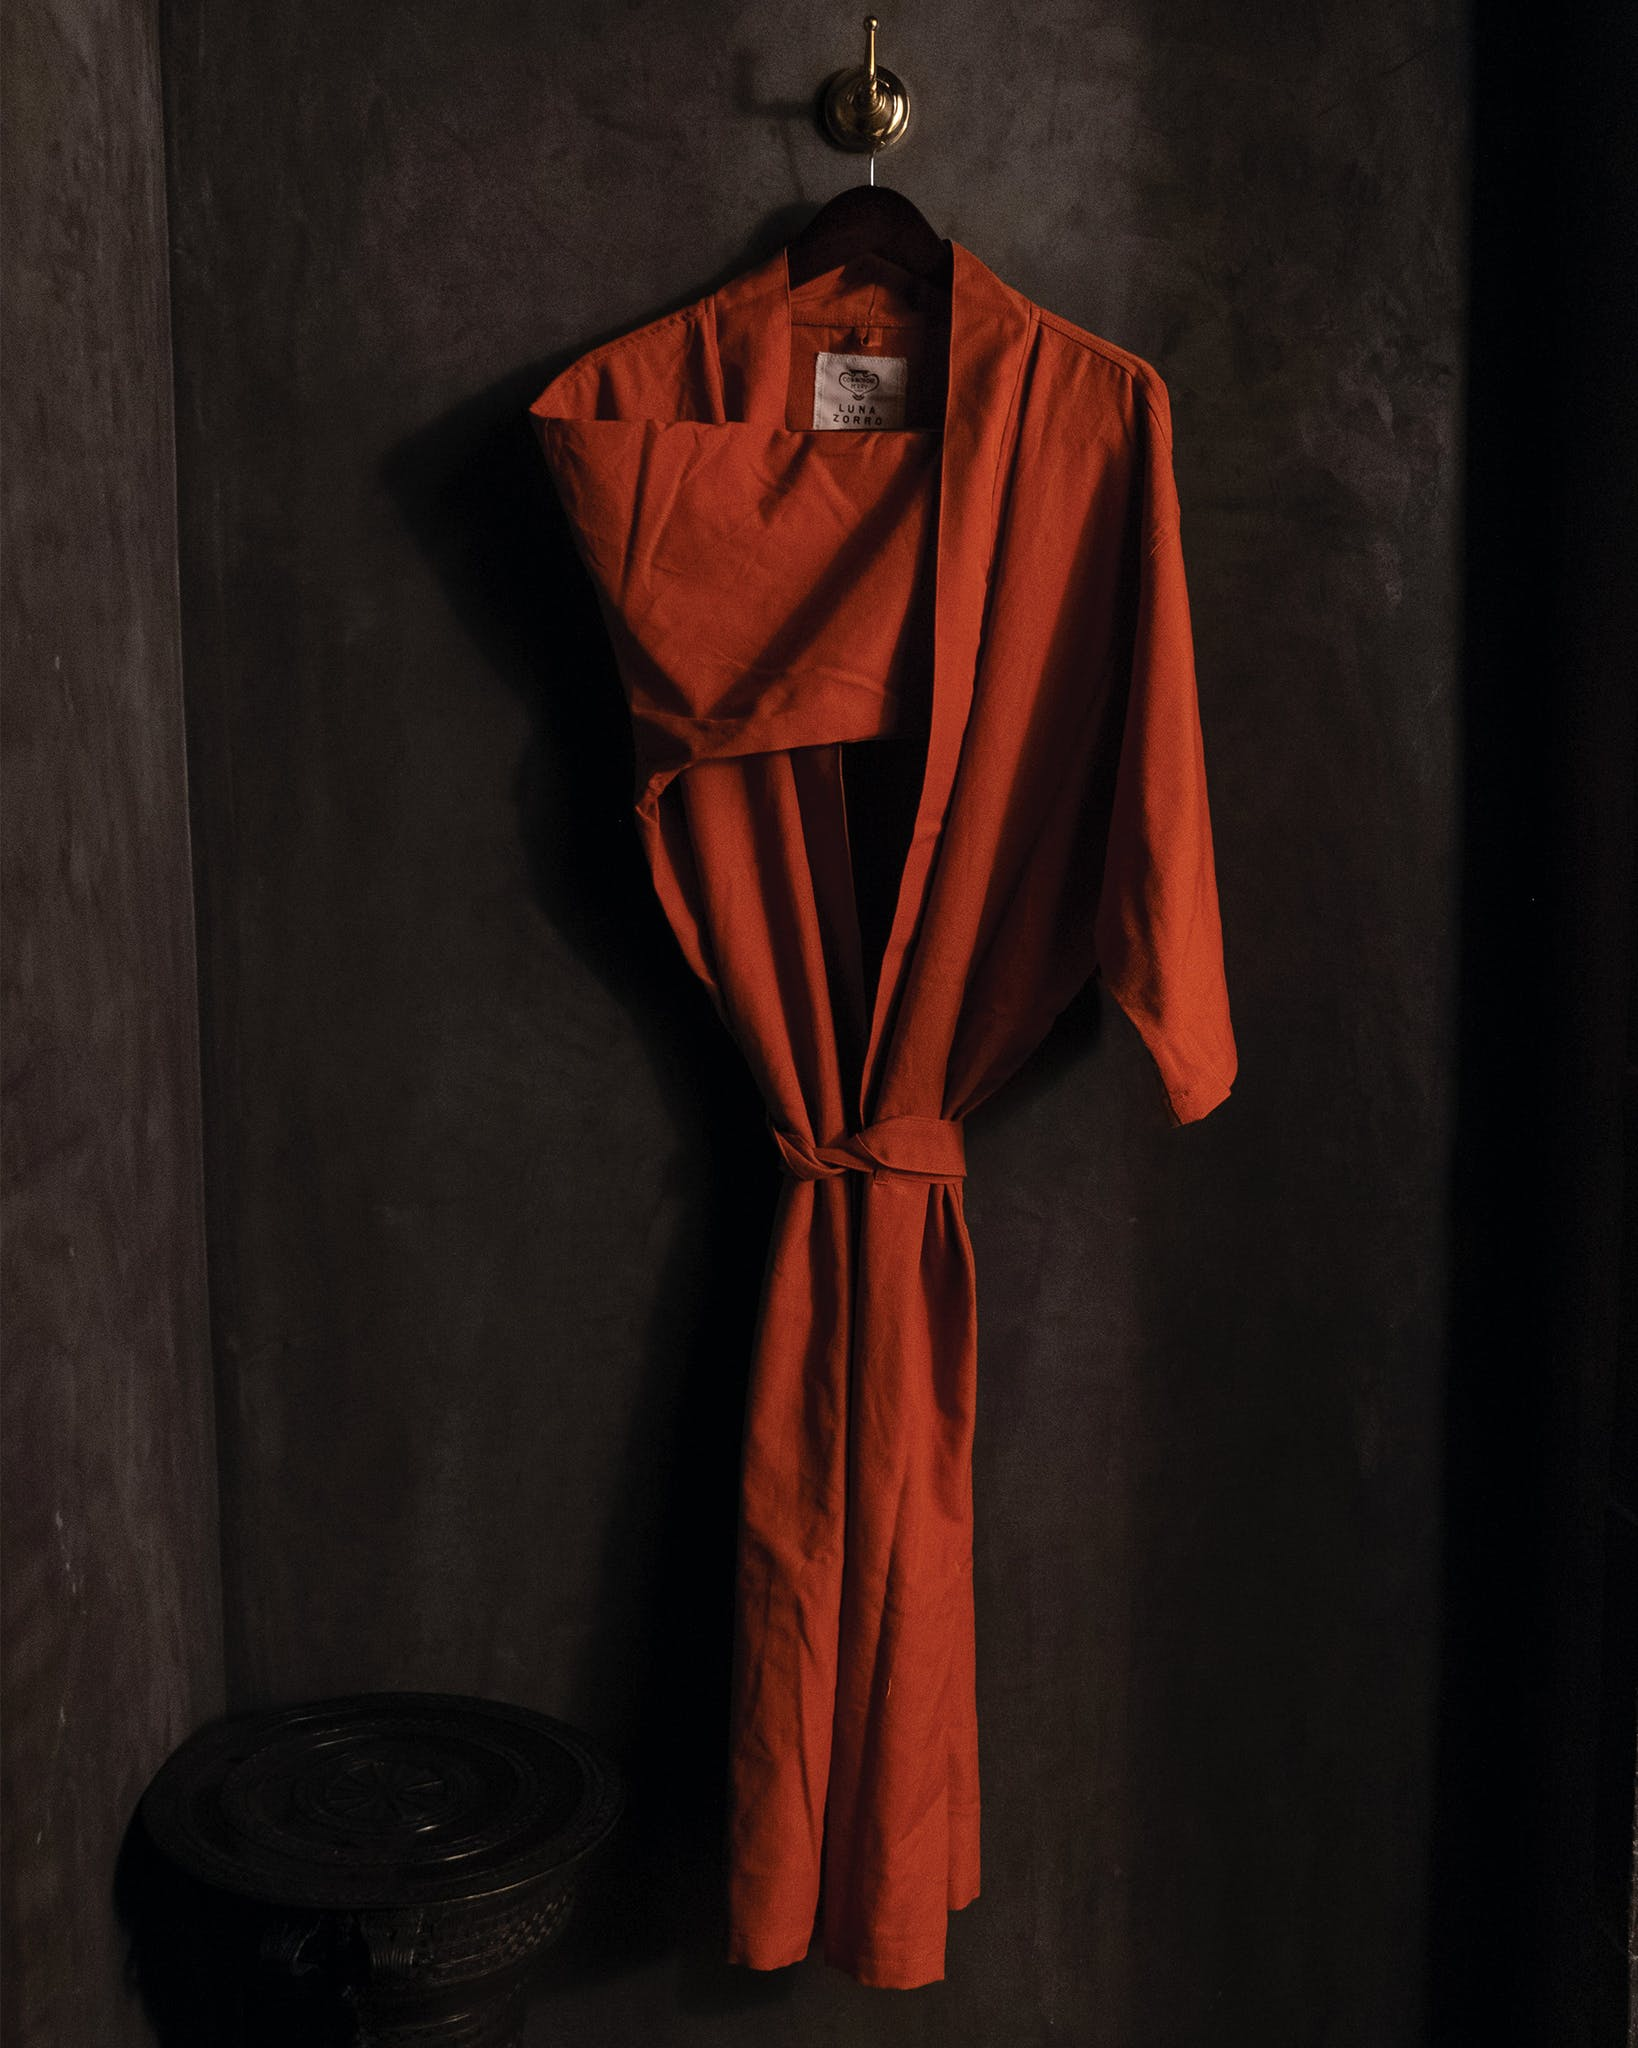 The hotel's signature linen robes were made by Luna Zorro, the Guatemalan collective of weavers that created the hotel's handmade rugs.